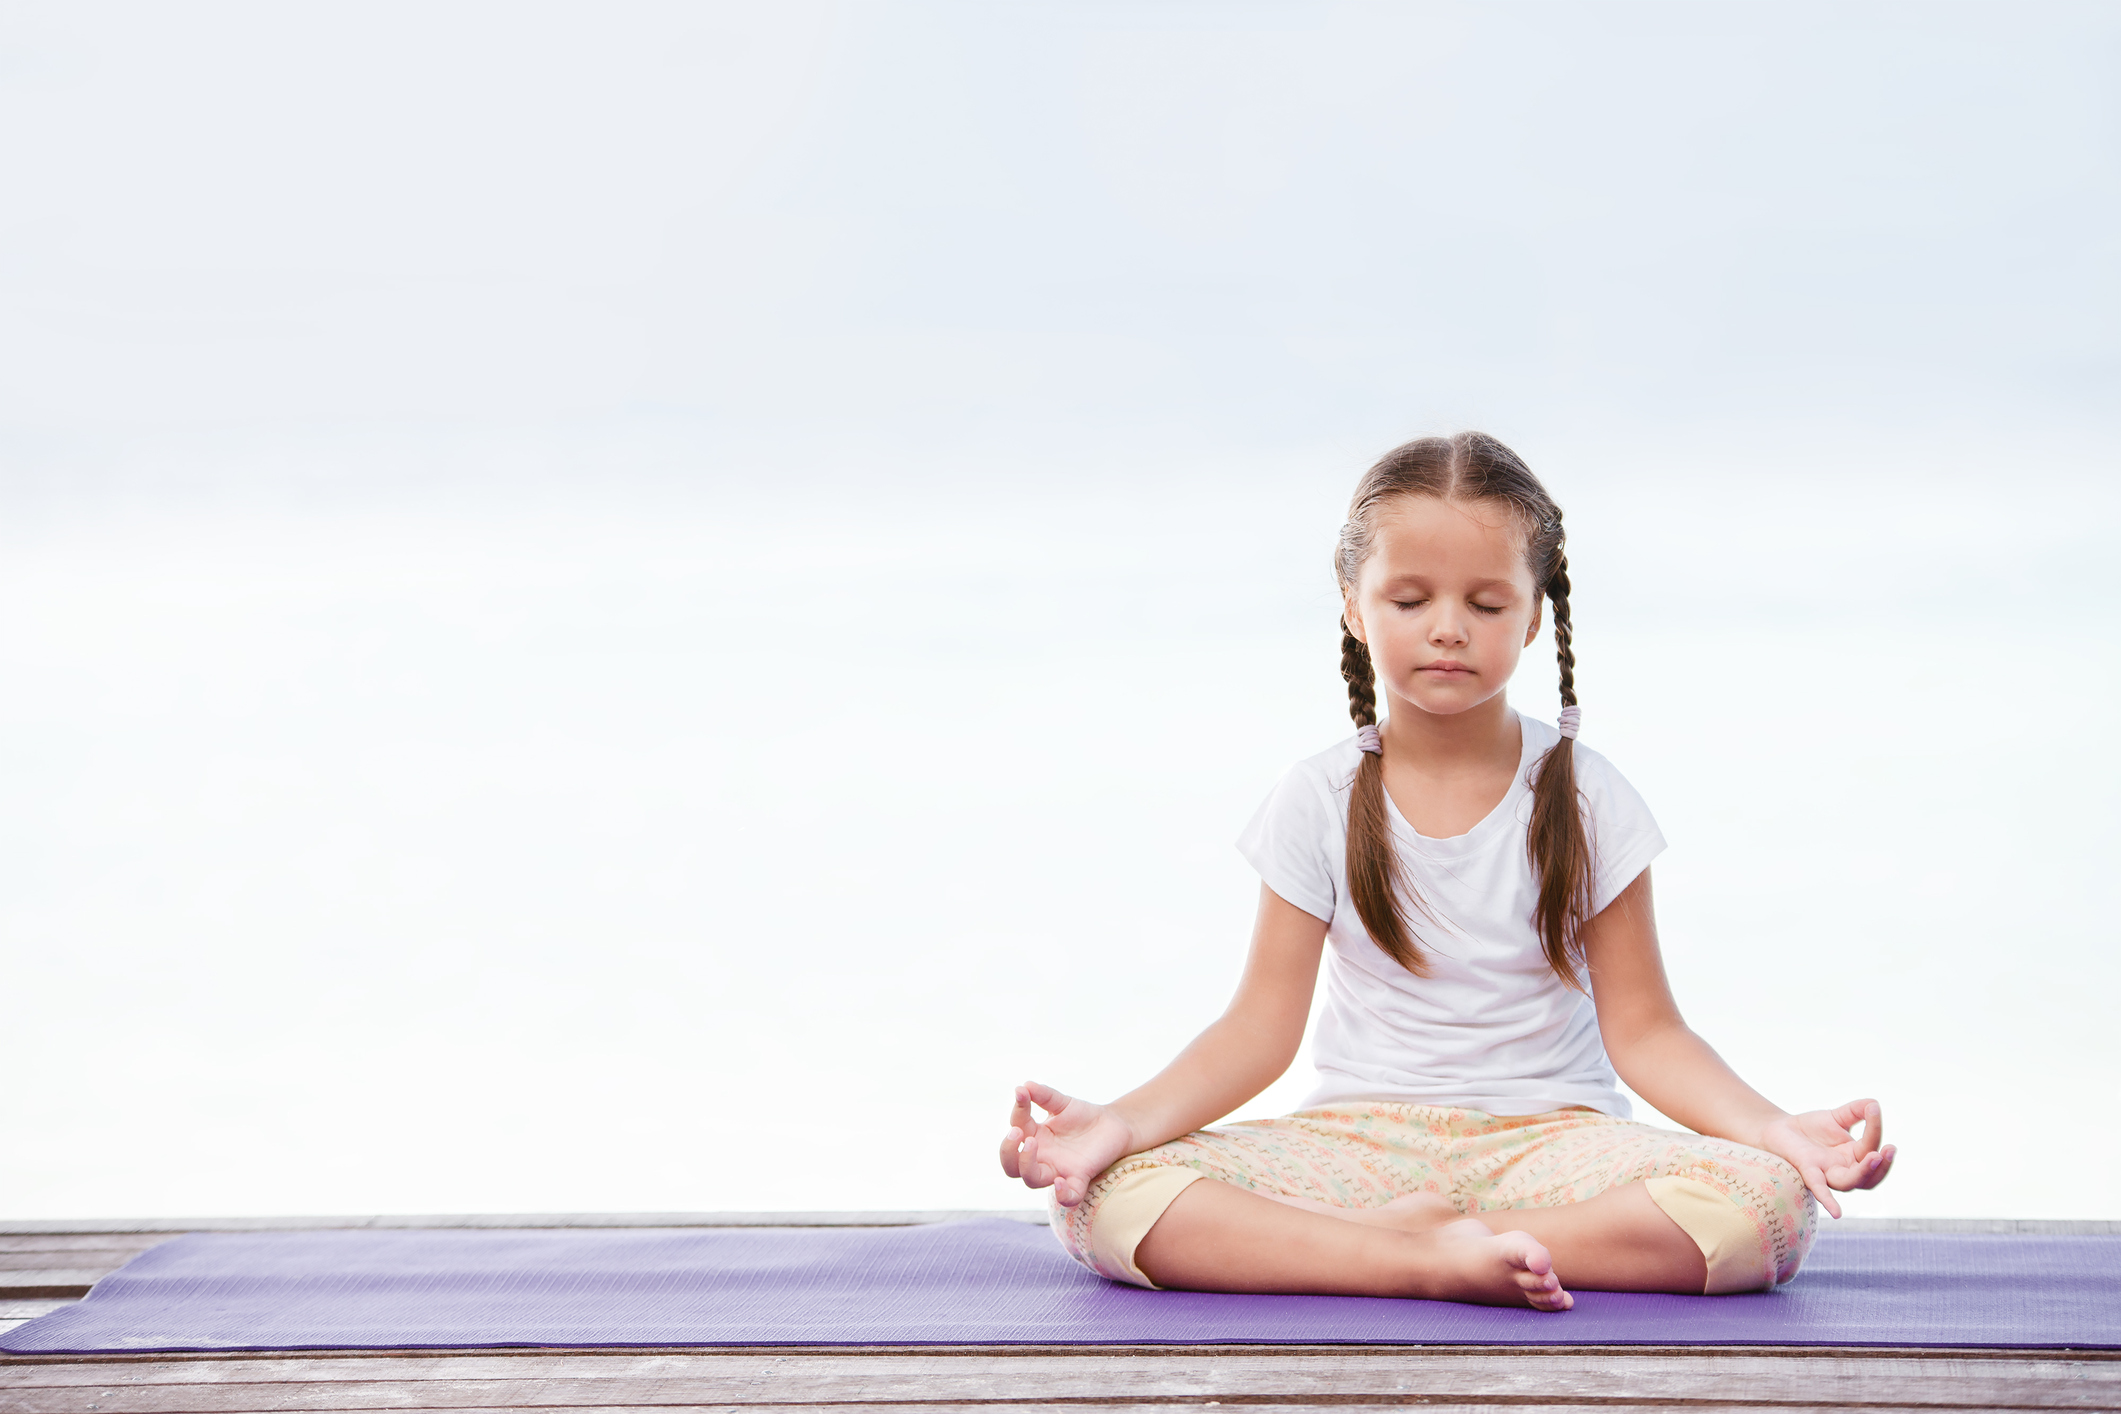 Pediatric Integrative Medicine American >> 3 Things Parents Should Know About Complementary And Alternative